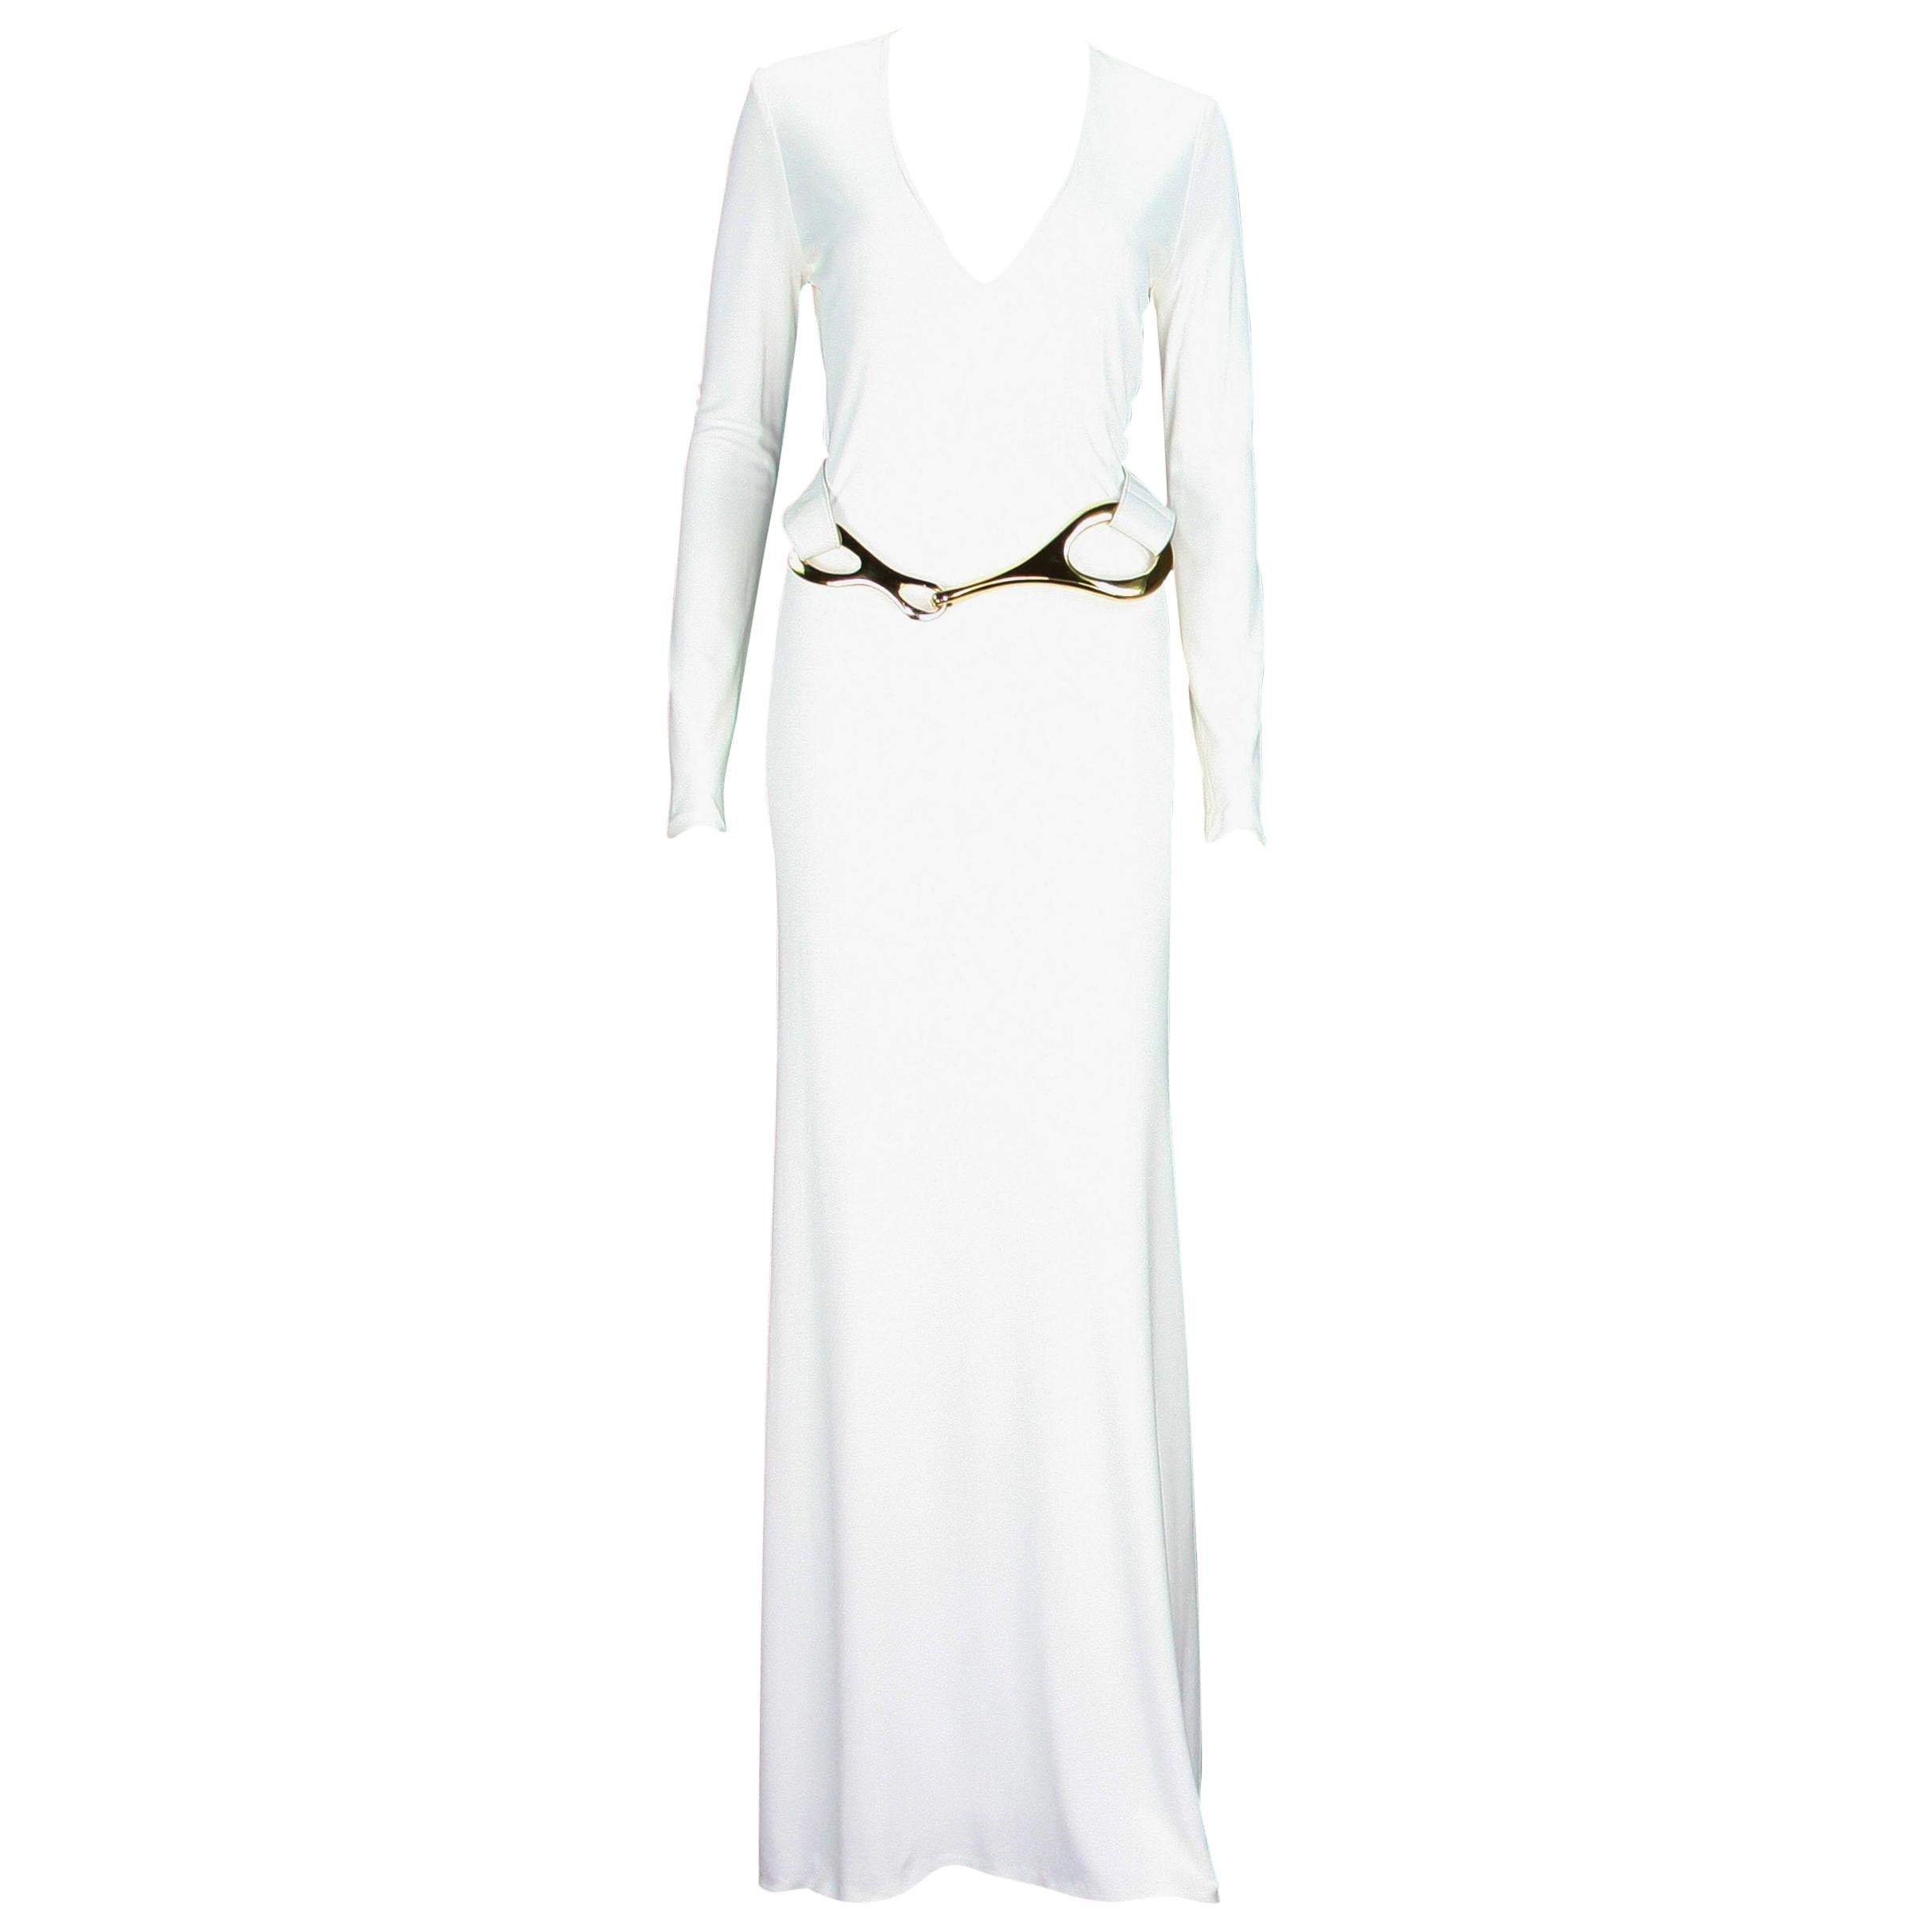 Museum Tom Ford for Gucci F/W 1996 Collection White Jersey Belted Dress Gown 38